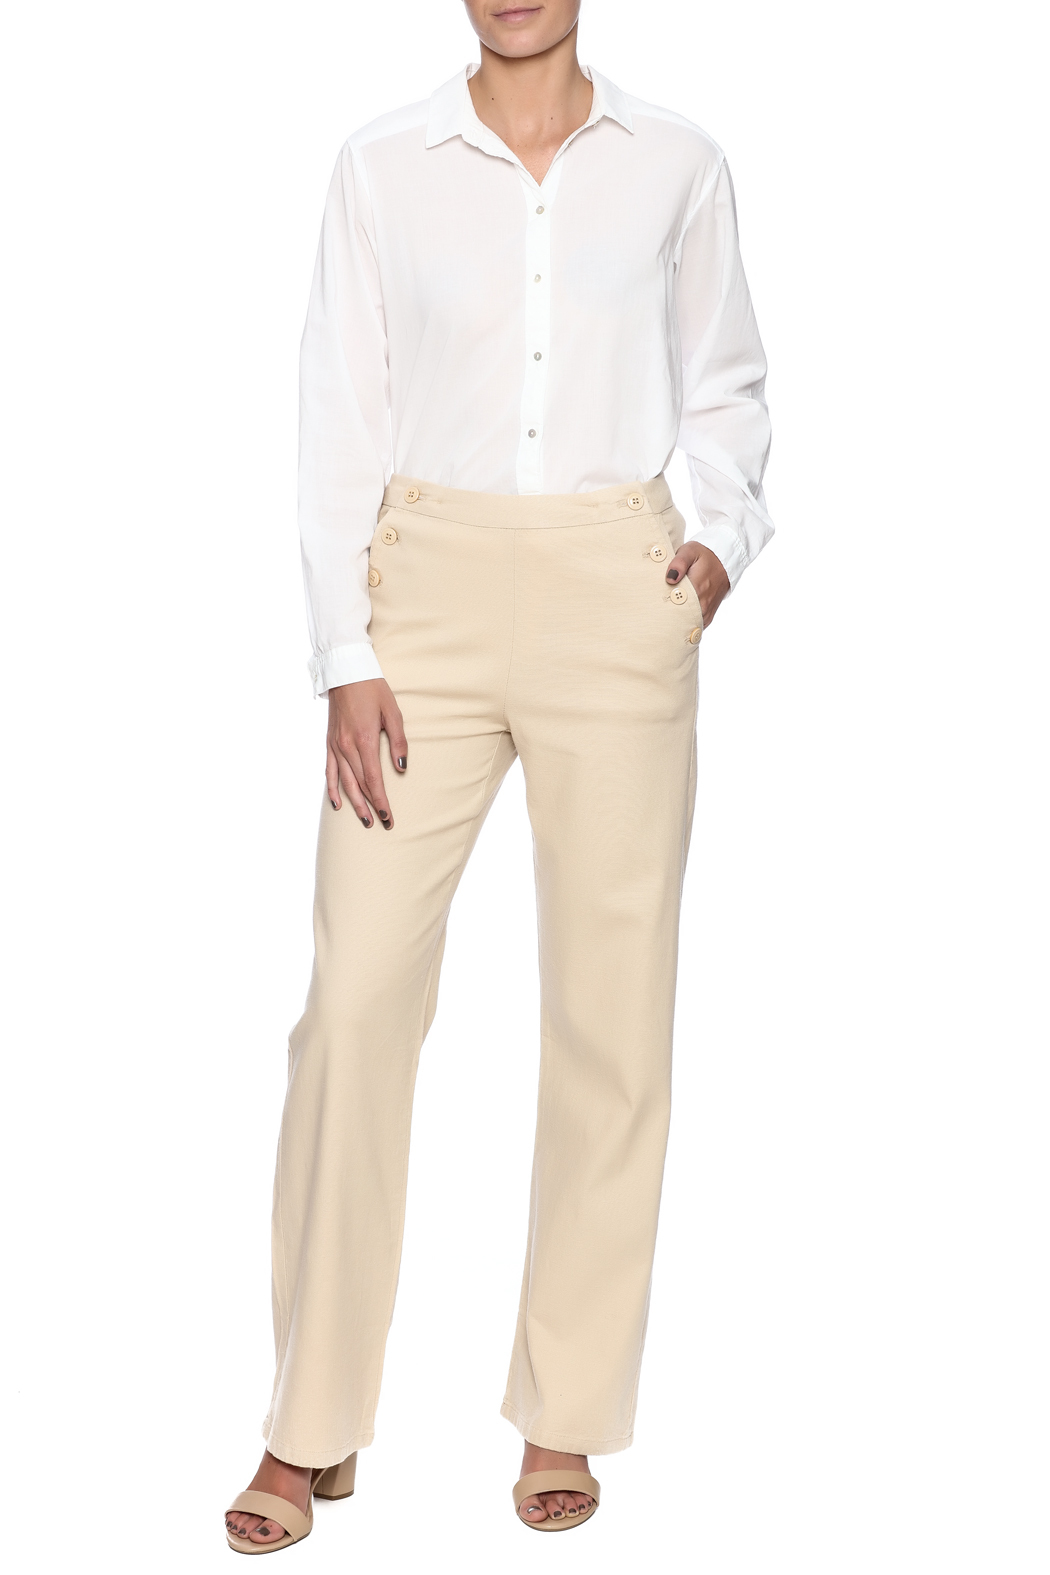 Bishop + Young Button Front Pants - Front Full Image